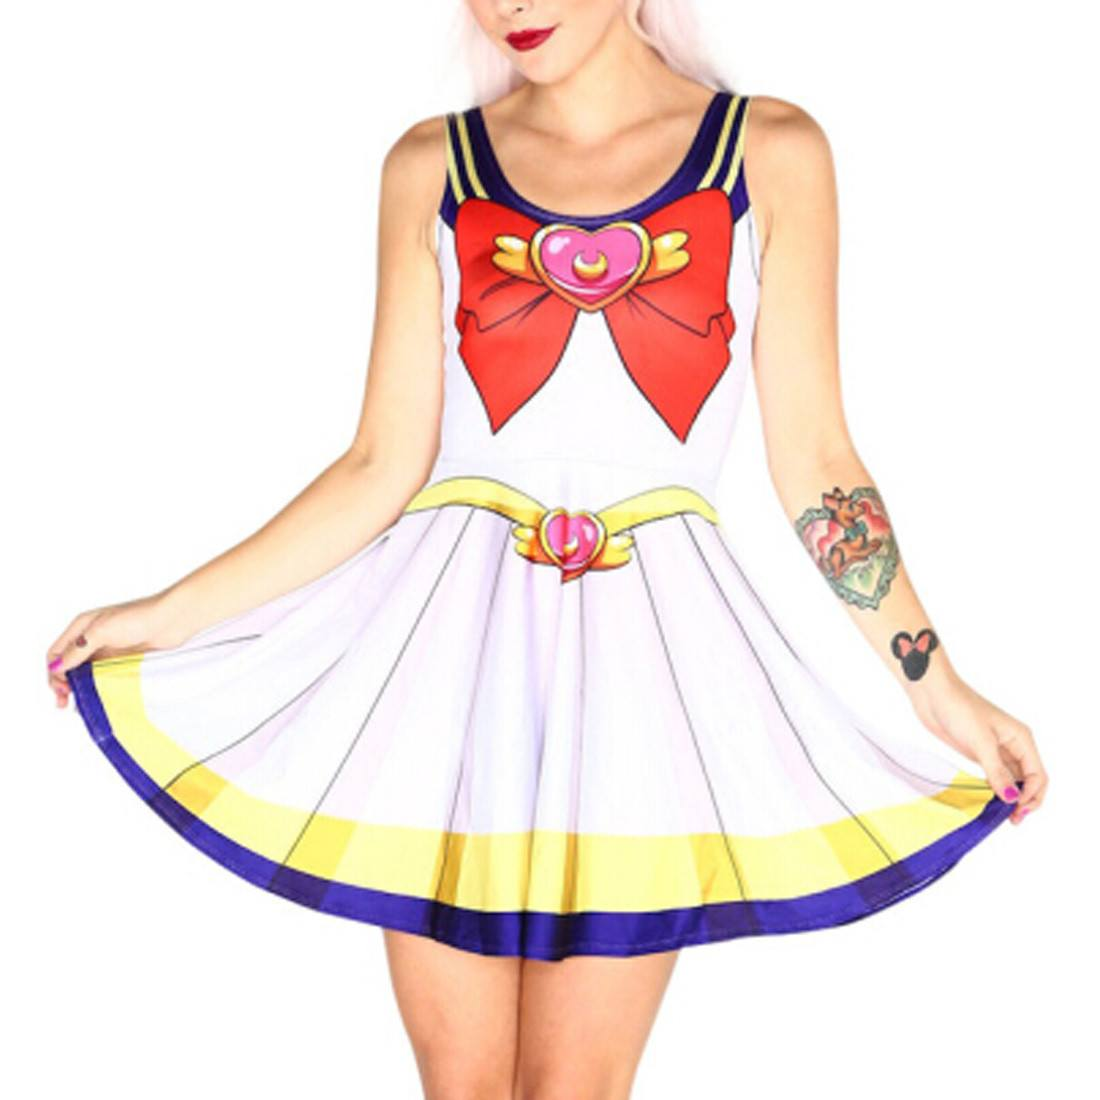 Sailor Moon Anime Inspired Digital Print Skater Dress